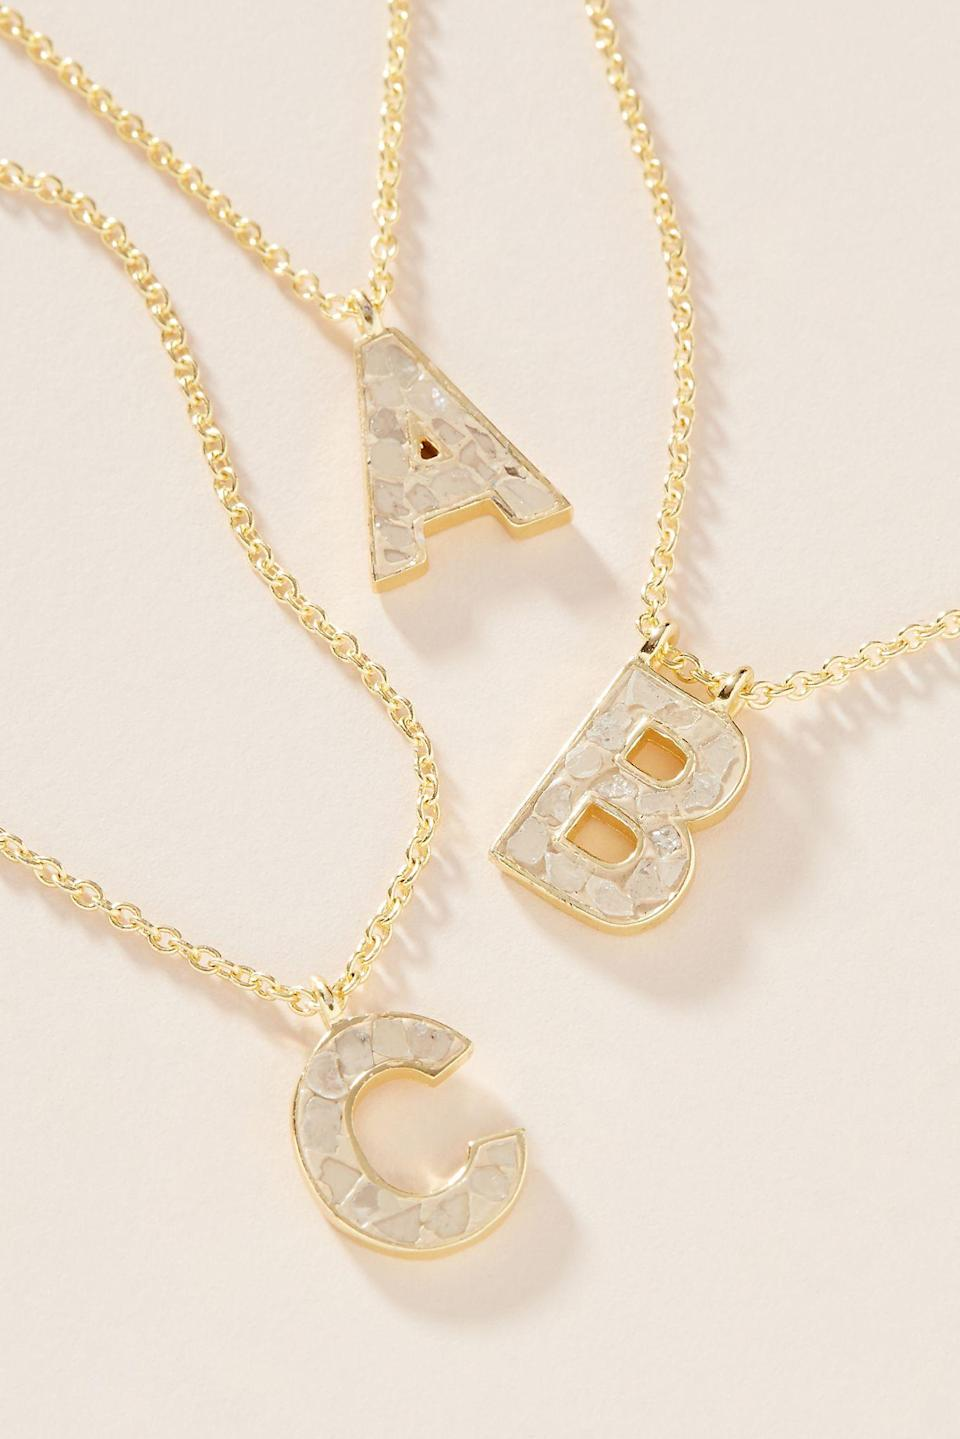 """<br><br><strong>Collections by Joya</strong> Deco Diamond Monogram Pendant Necklace, $, available at <a href=""""https://go.skimresources.com/?id=30283X879131&url=https%3A%2F%2Fwww.anthropologie.com%2Fshop%2Fdeco-diamond-monogram-pendant-necklace"""" rel=""""nofollow noopener"""" target=""""_blank"""" data-ylk=""""slk:Anthropologie"""" class=""""link rapid-noclick-resp"""">Anthropologie</a>"""